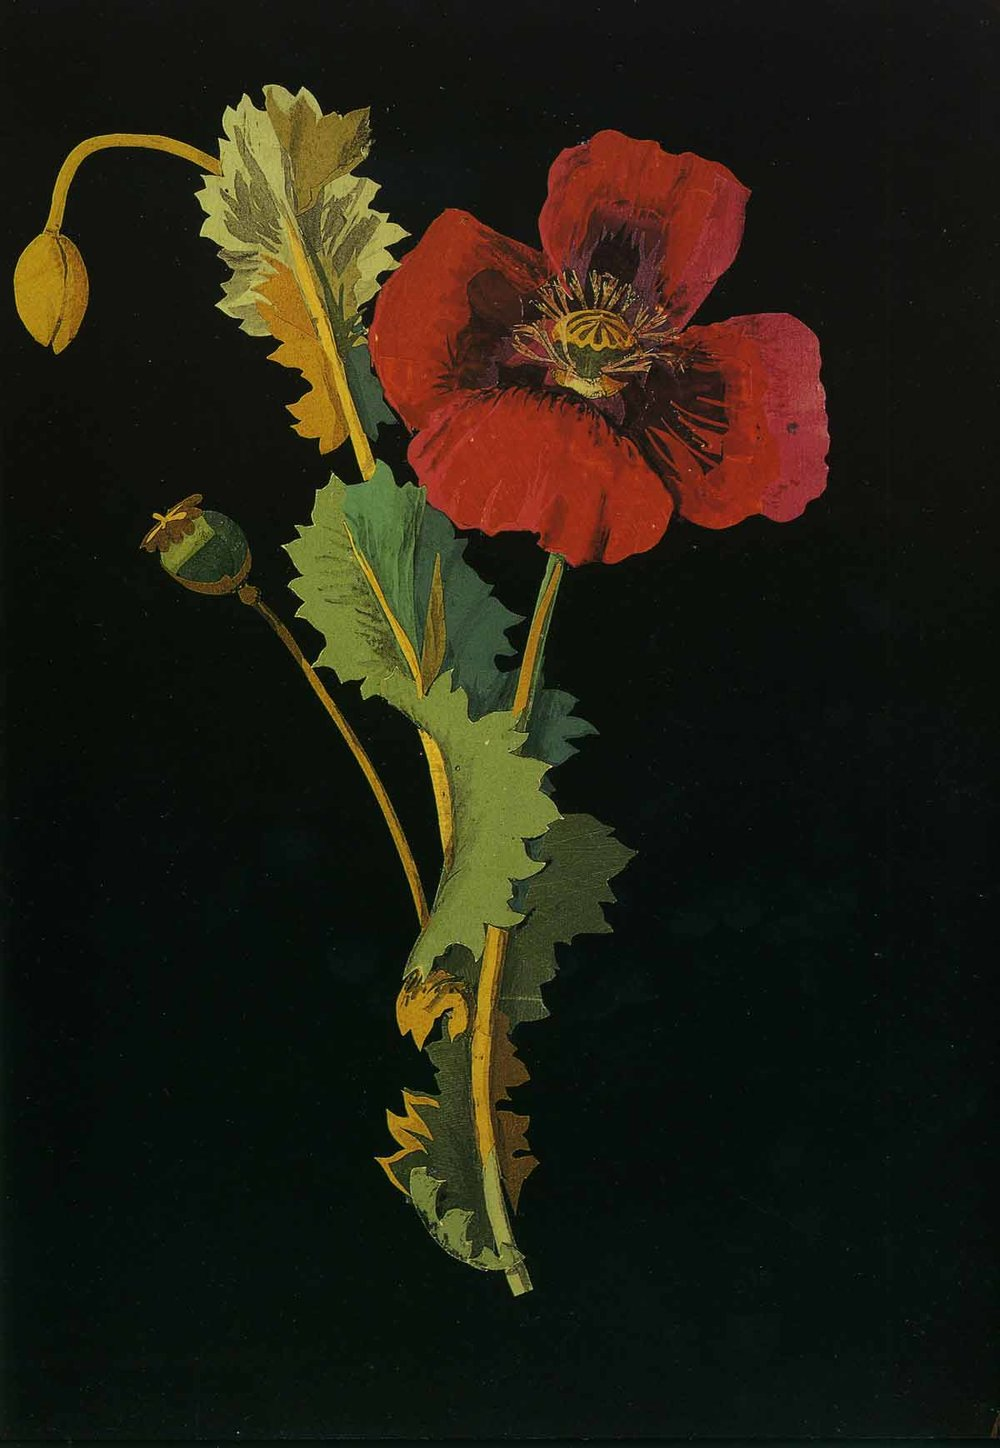 Papaver somniferum, the Opium Poppy, Bulstrode, October 18, 1776, by Mary Delany.Please note: All images are from The Paper Garden and provided courtesy of The British Museum.